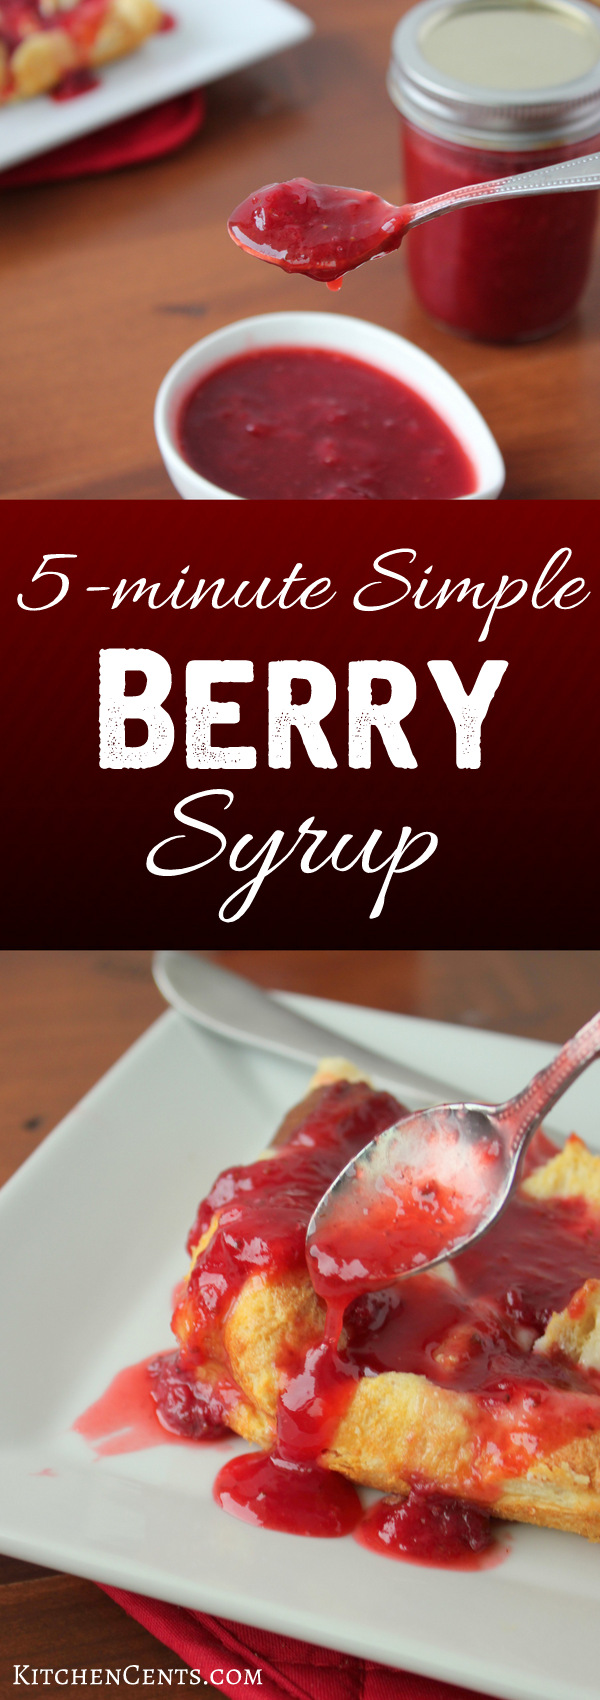 5-minute Simple Berry Syrup | KitchenCents.com